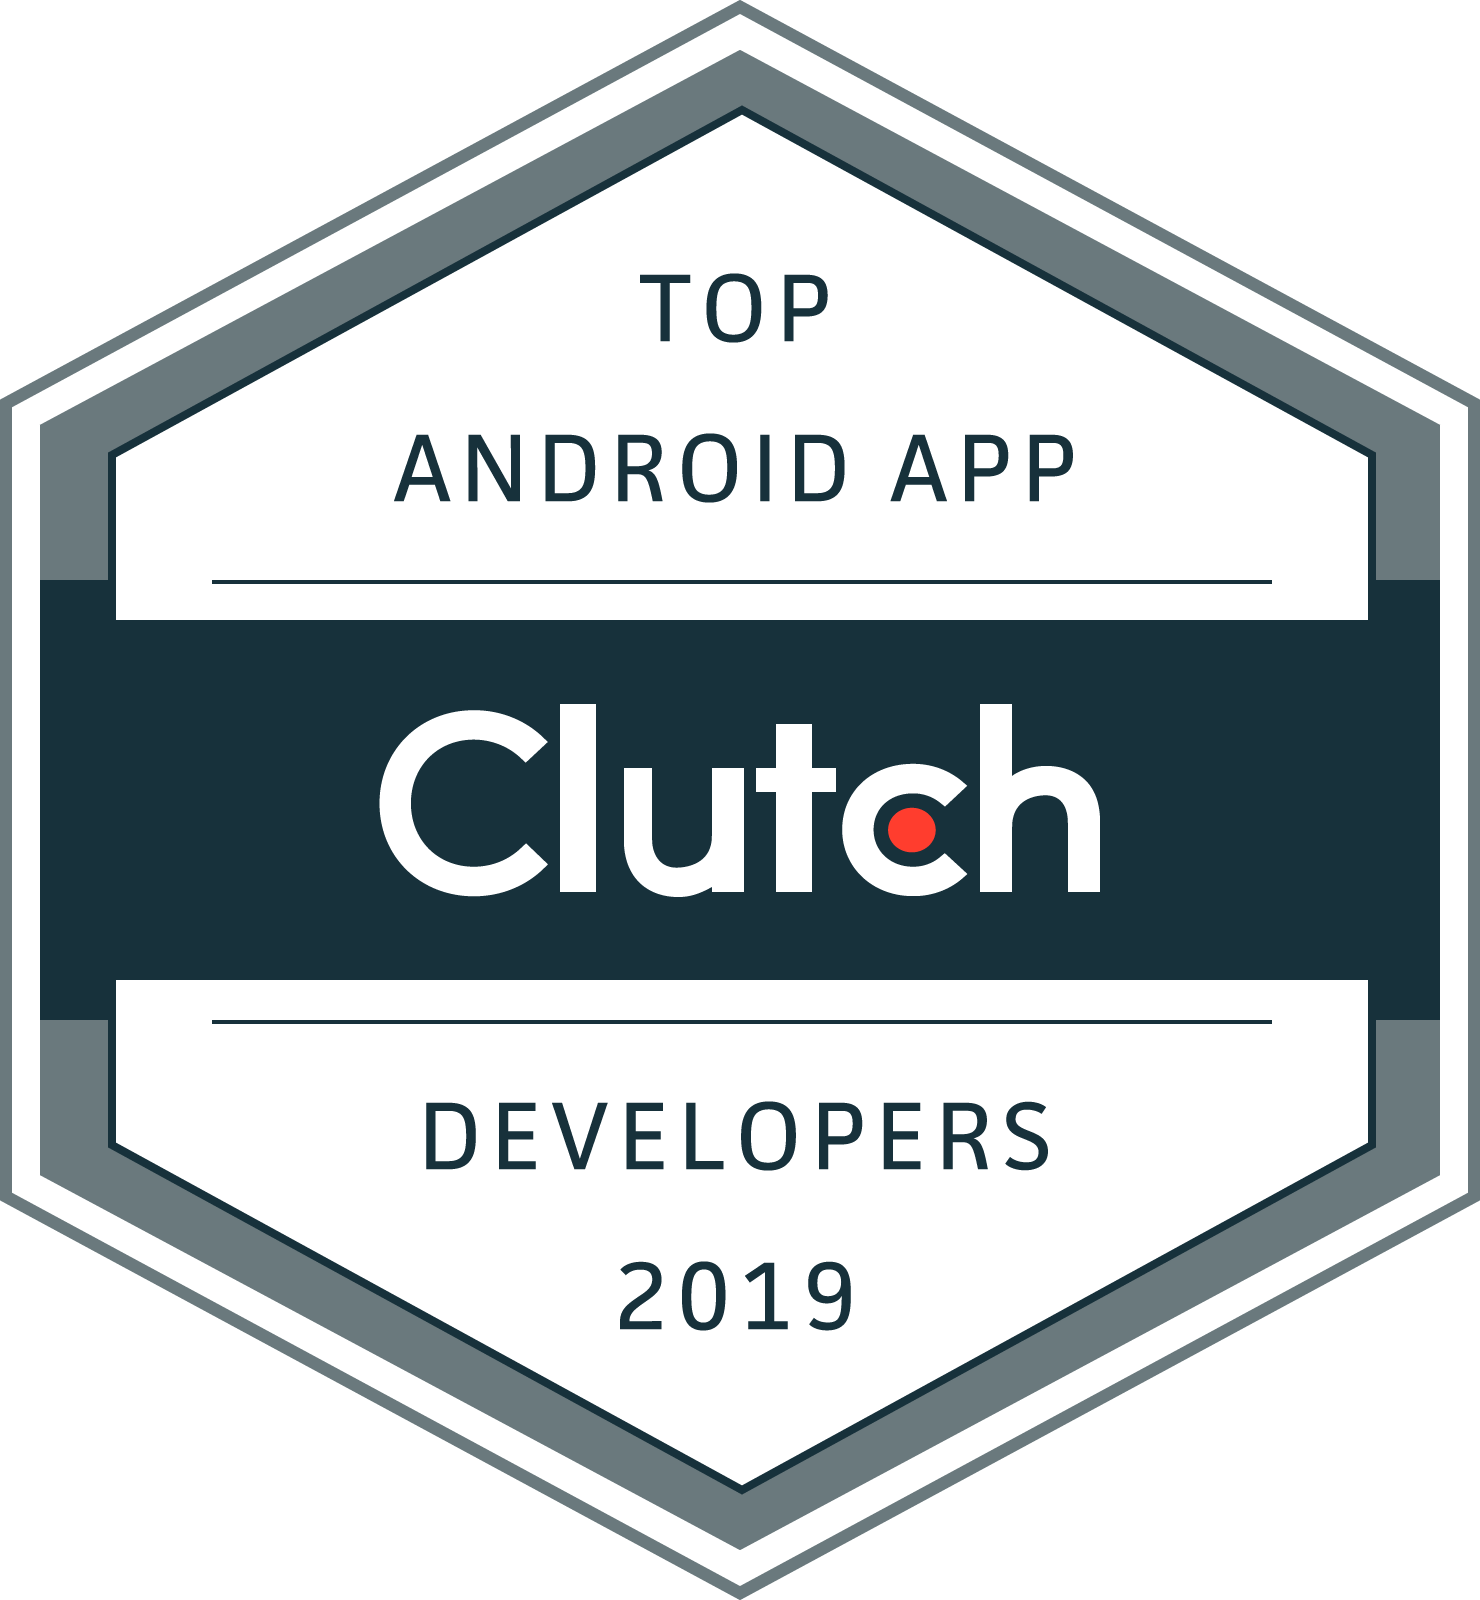 Top Android App Developers